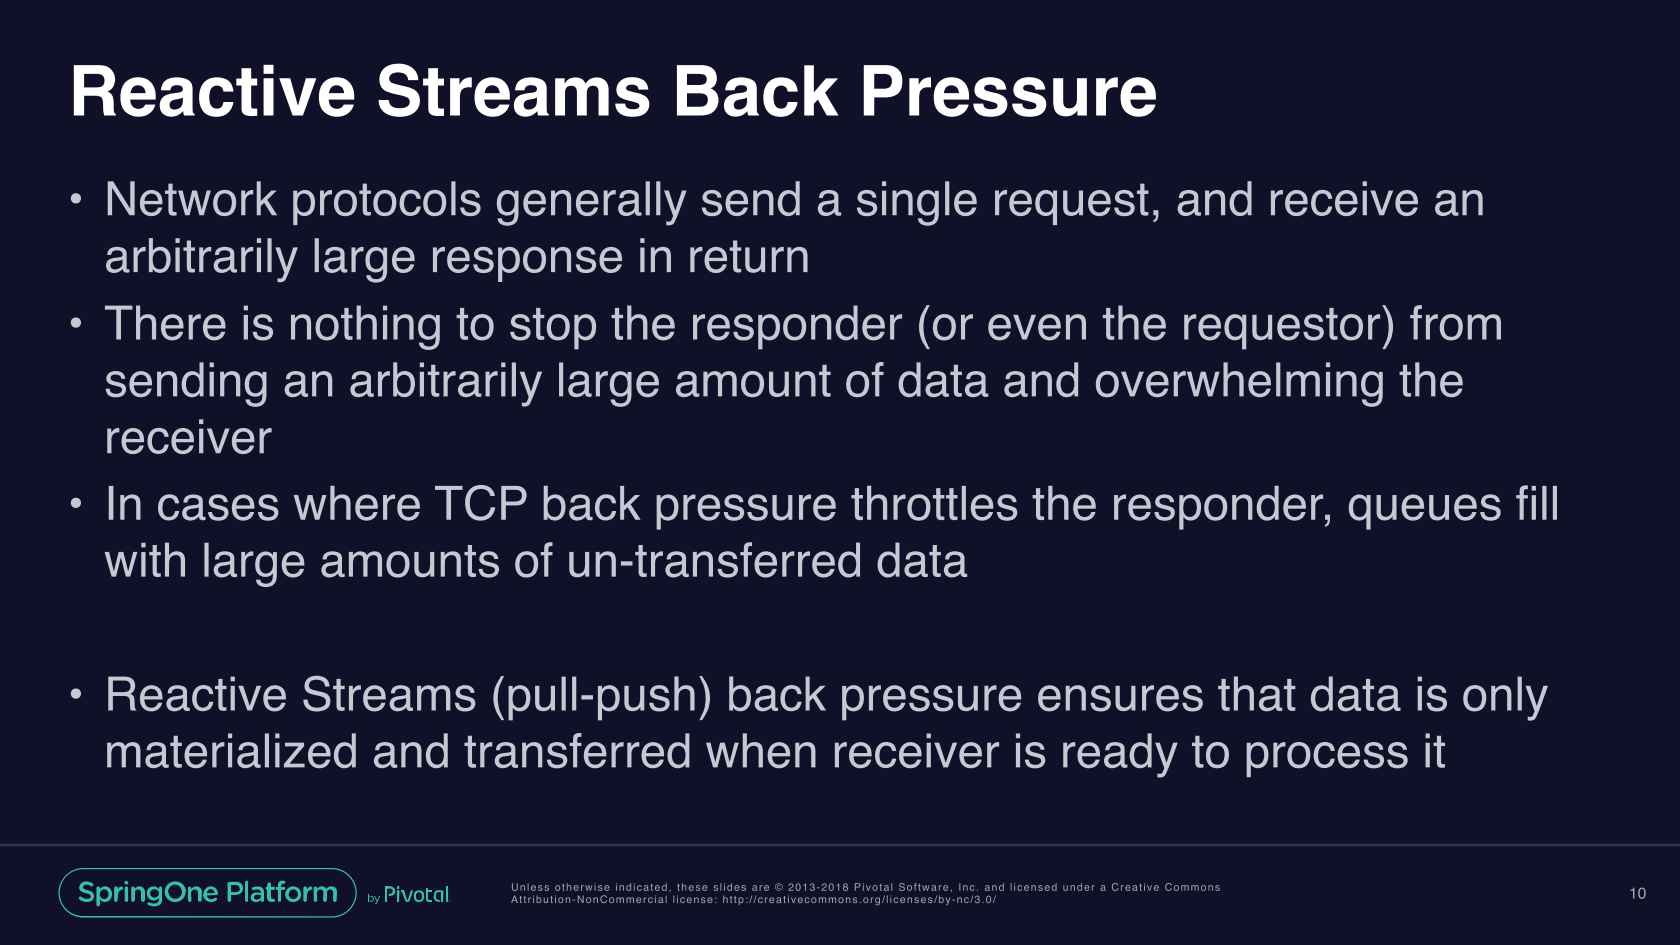 Multi-Service Reactive Streams Using Spring, Reactor, and